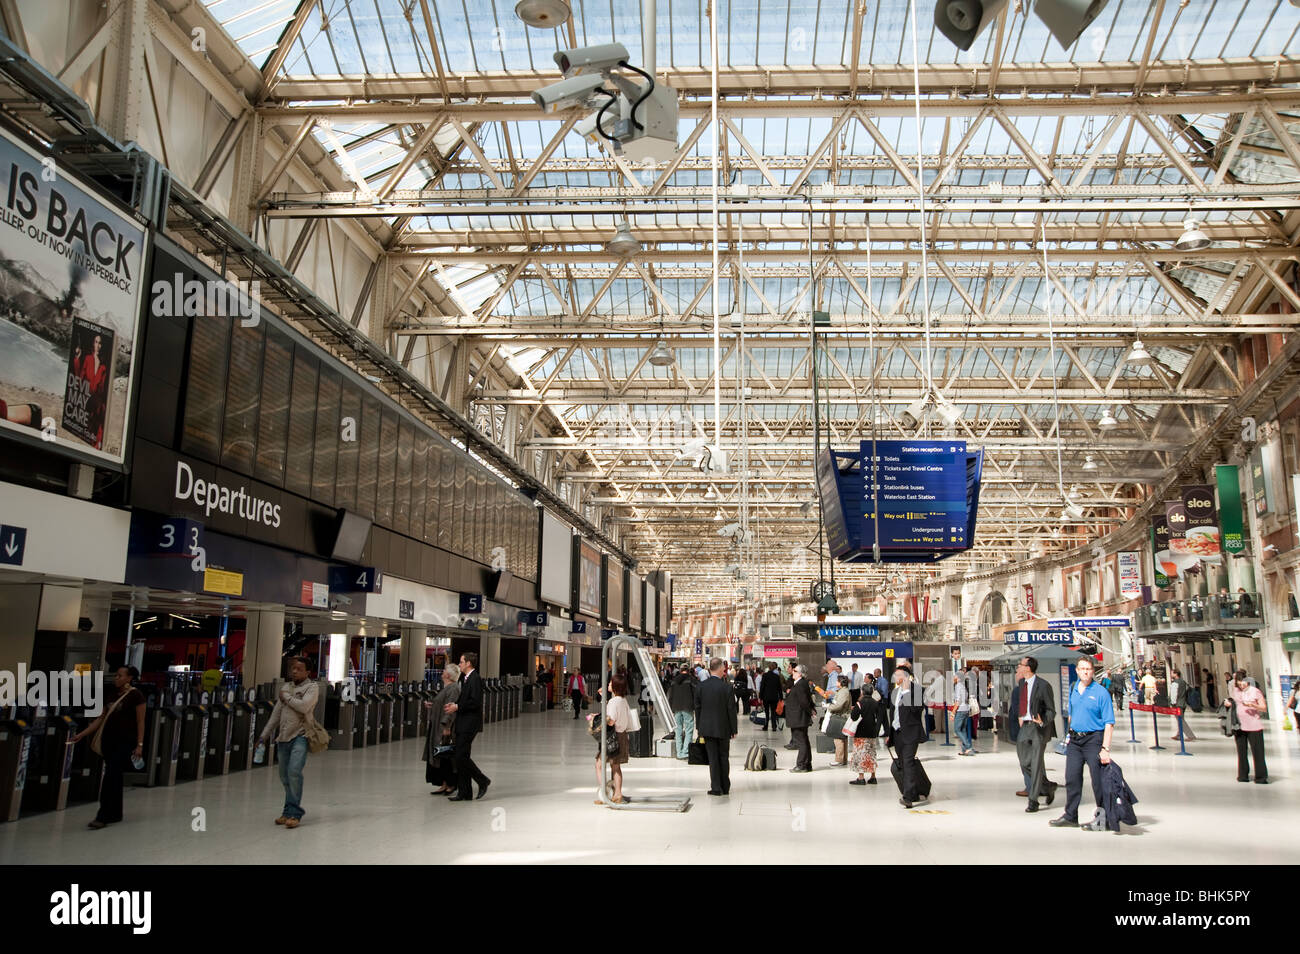 Waterloo station in London - Stock Image